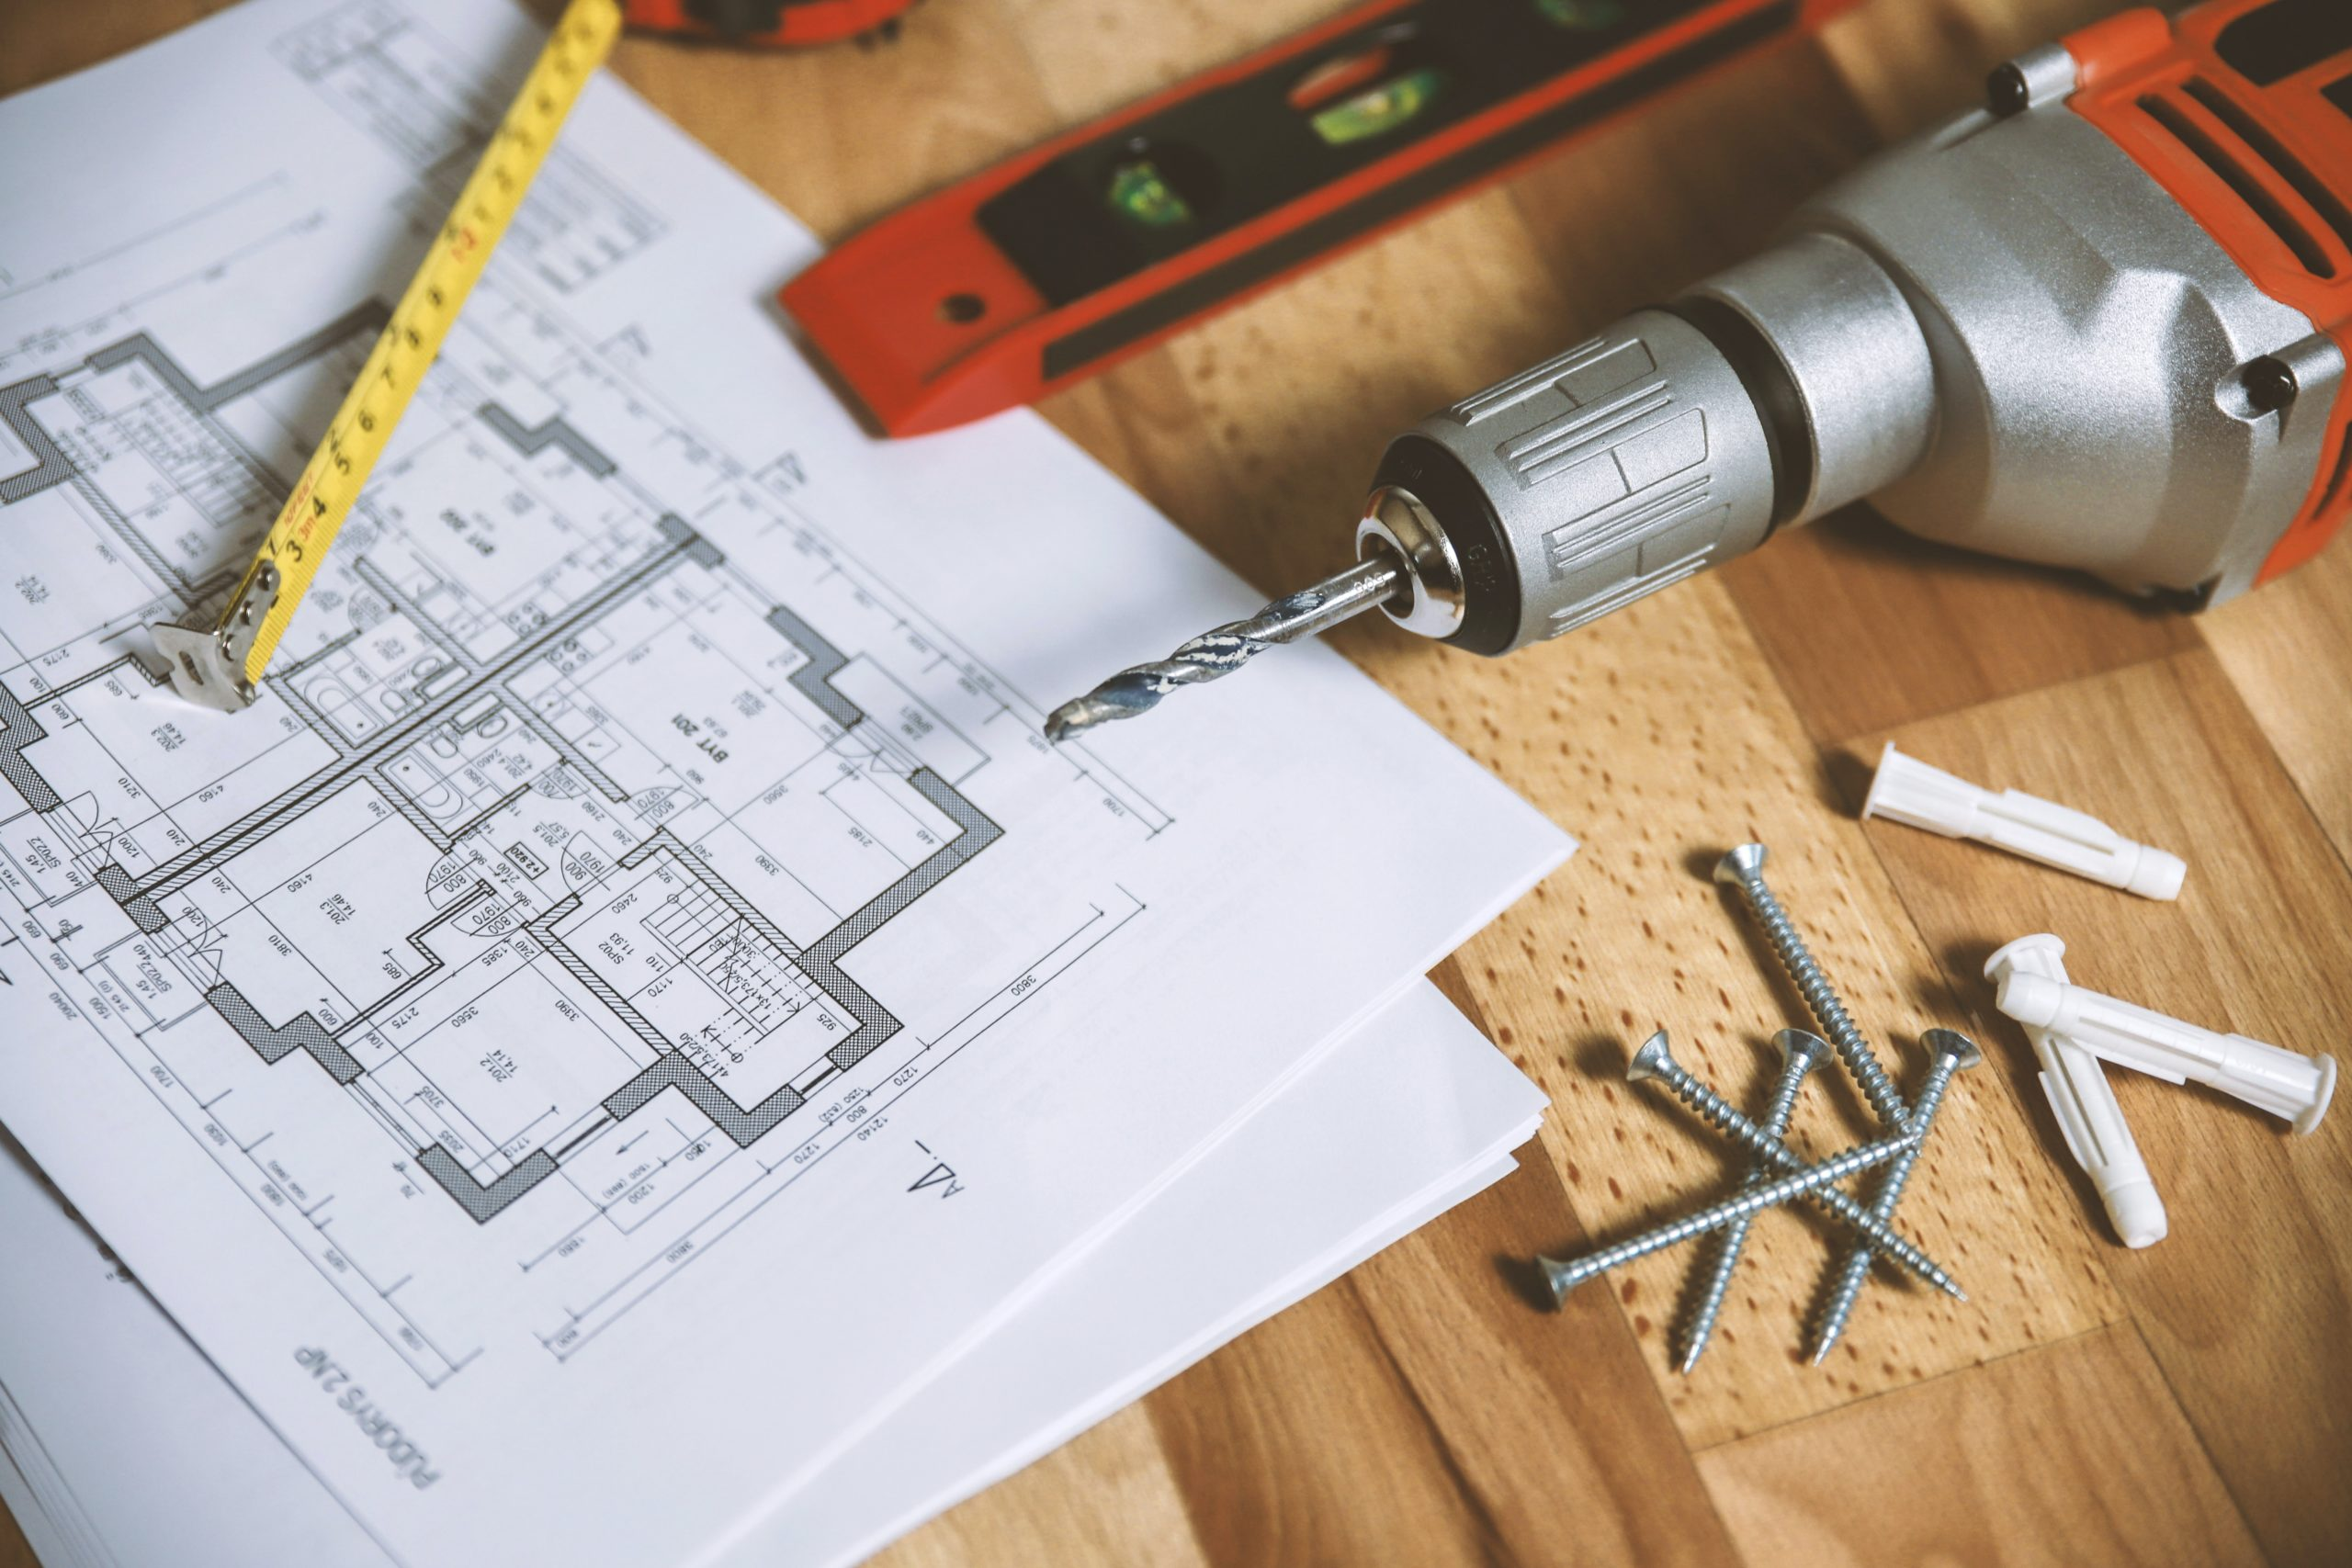 Drill and blue prints on a work table